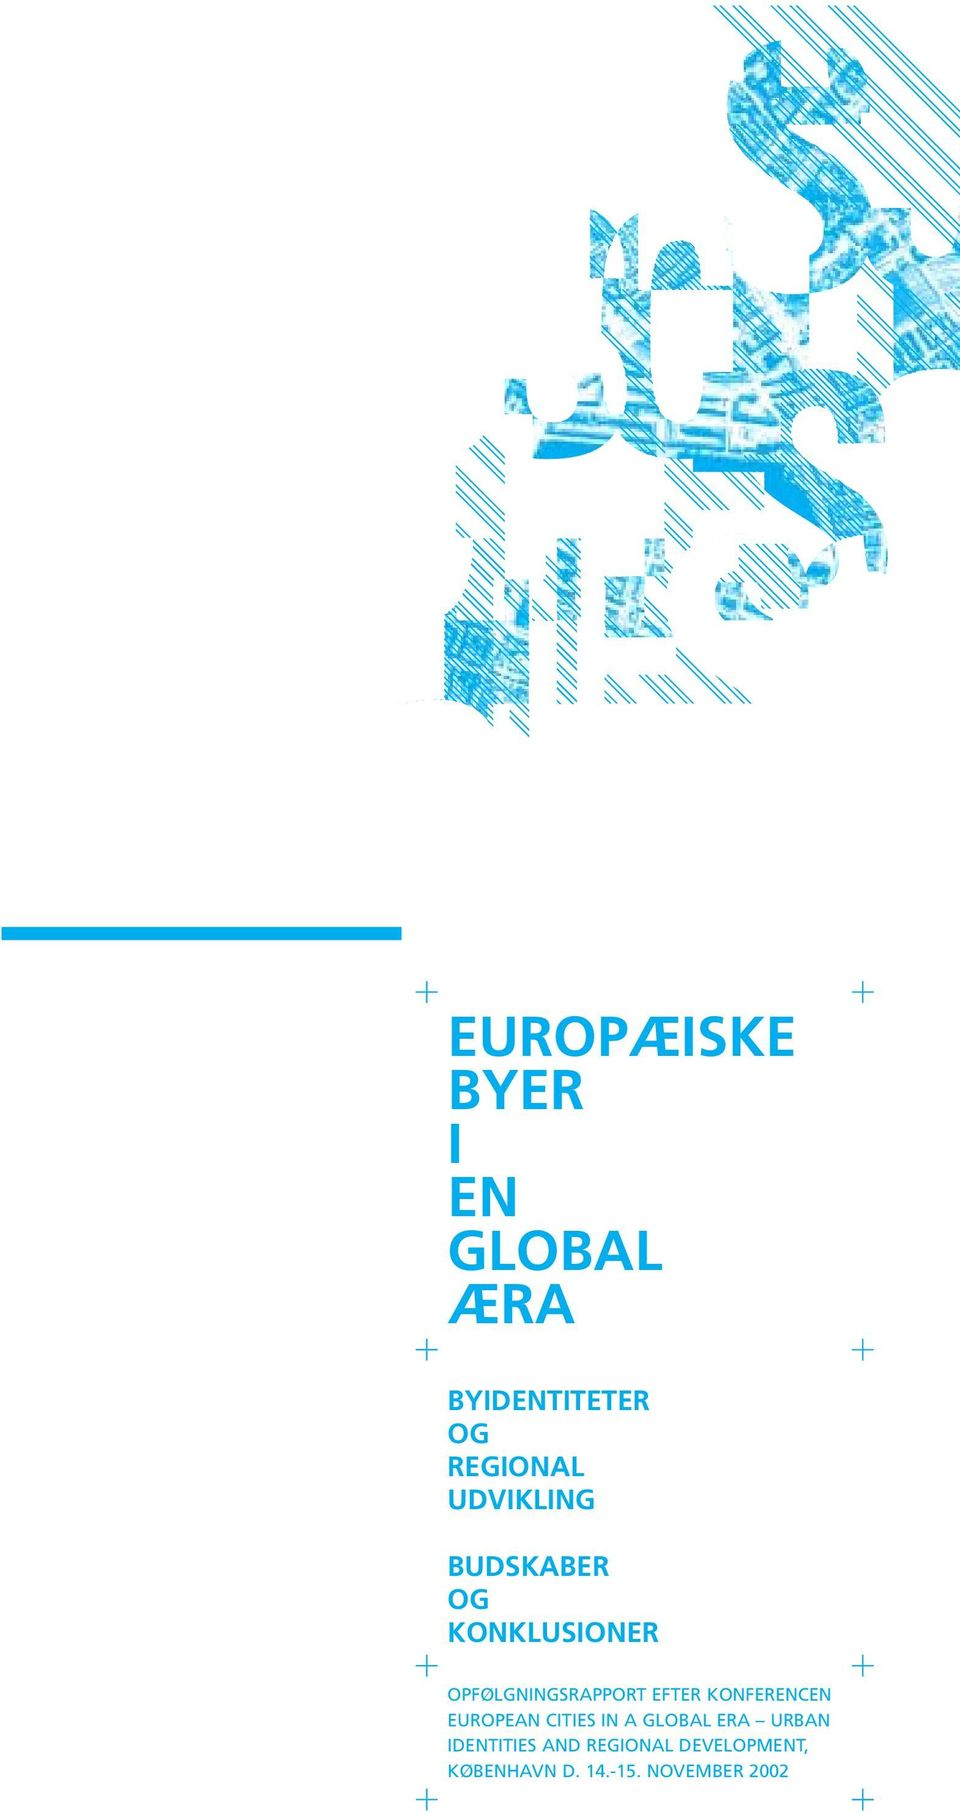 EFTER KONFERENCEN EUROPEAN CITIES IN A GLOBAL ERA URBAN